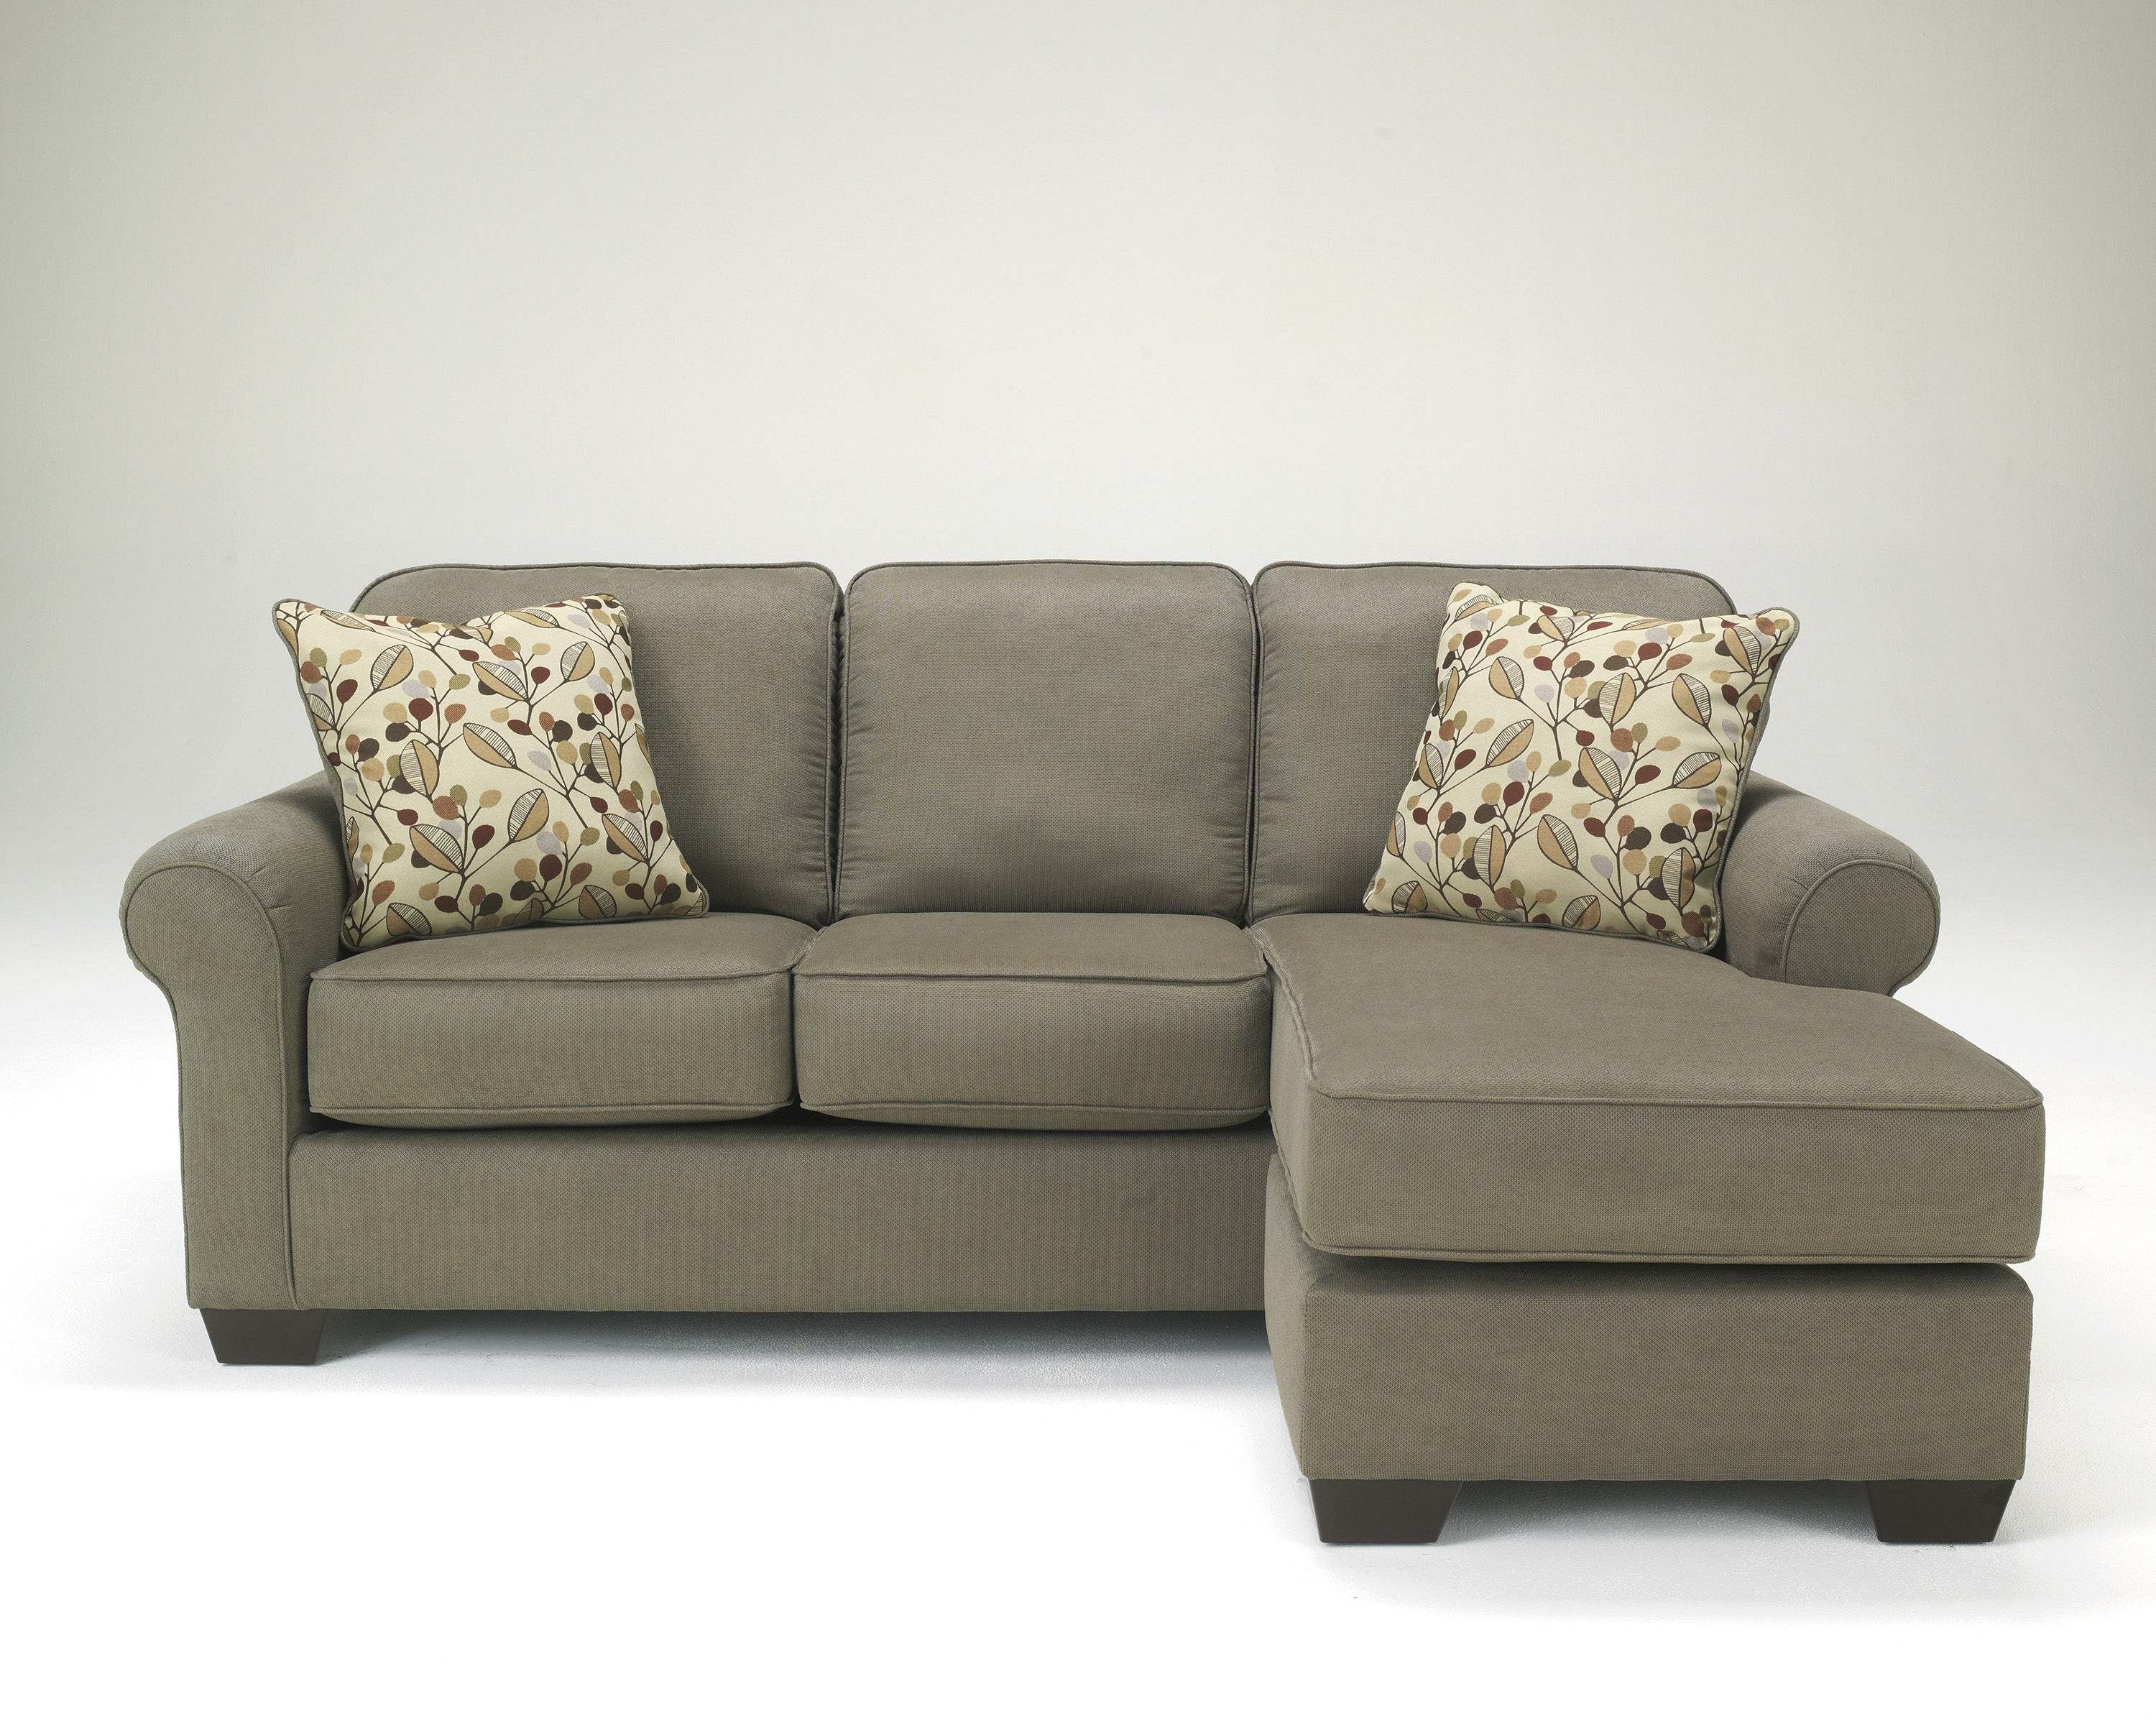 Chaise Lounge Sofa Ashley Furniture – Furniture Designs Inside Preferred Ashley Furniture Chaise Lounges (View 9 of 15)